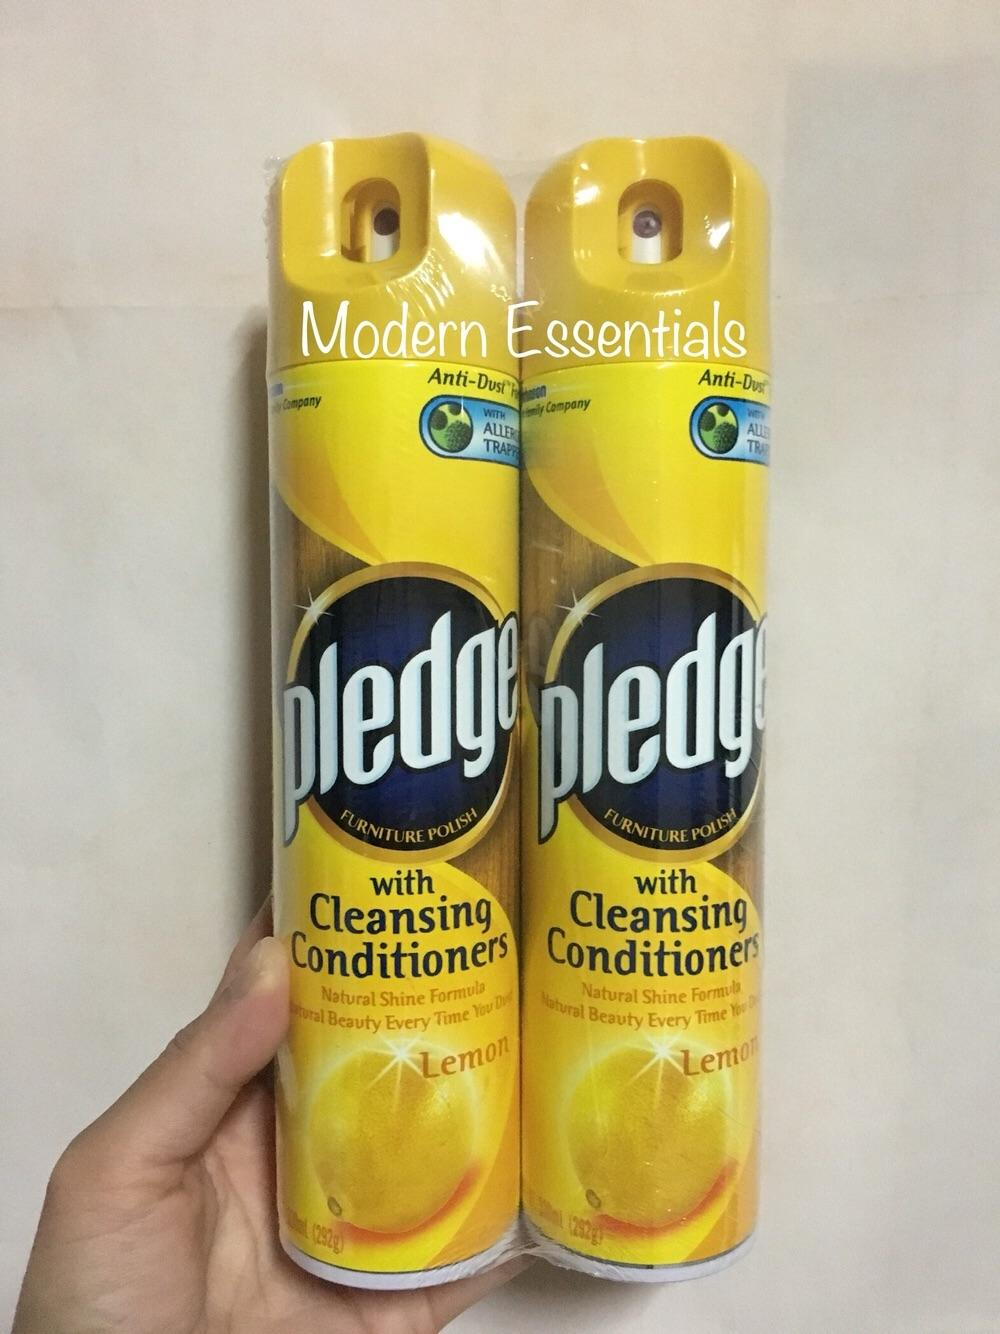 Pledge Furniture Polish Lemon Scent With Cleansing Conditioner 330ml X 2pcs By Modern Essentials.